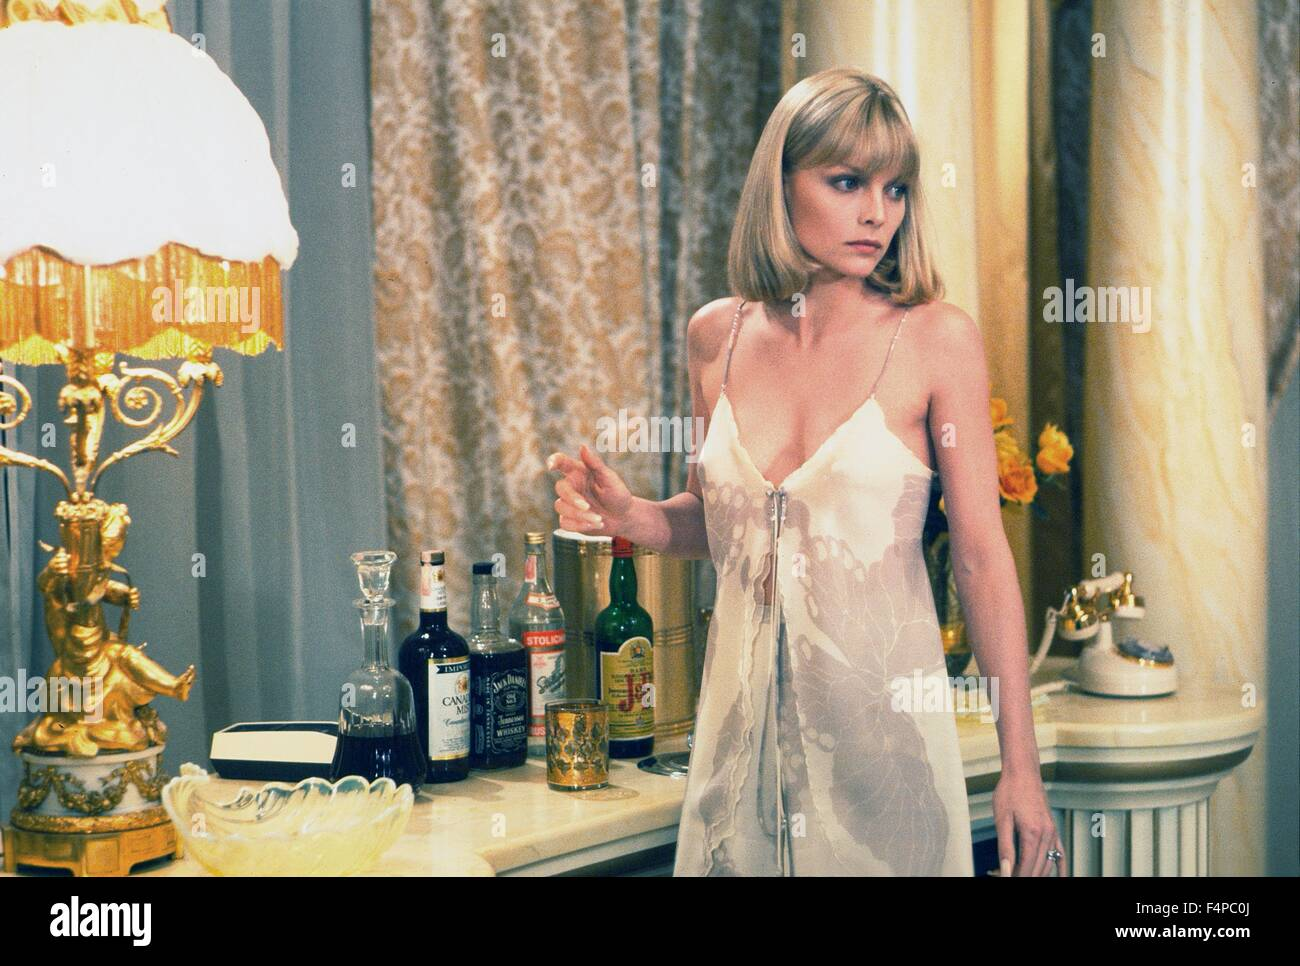 Michelle Pfeiffer / Scarface 1983 directed by Brian De Palma - Stock Image